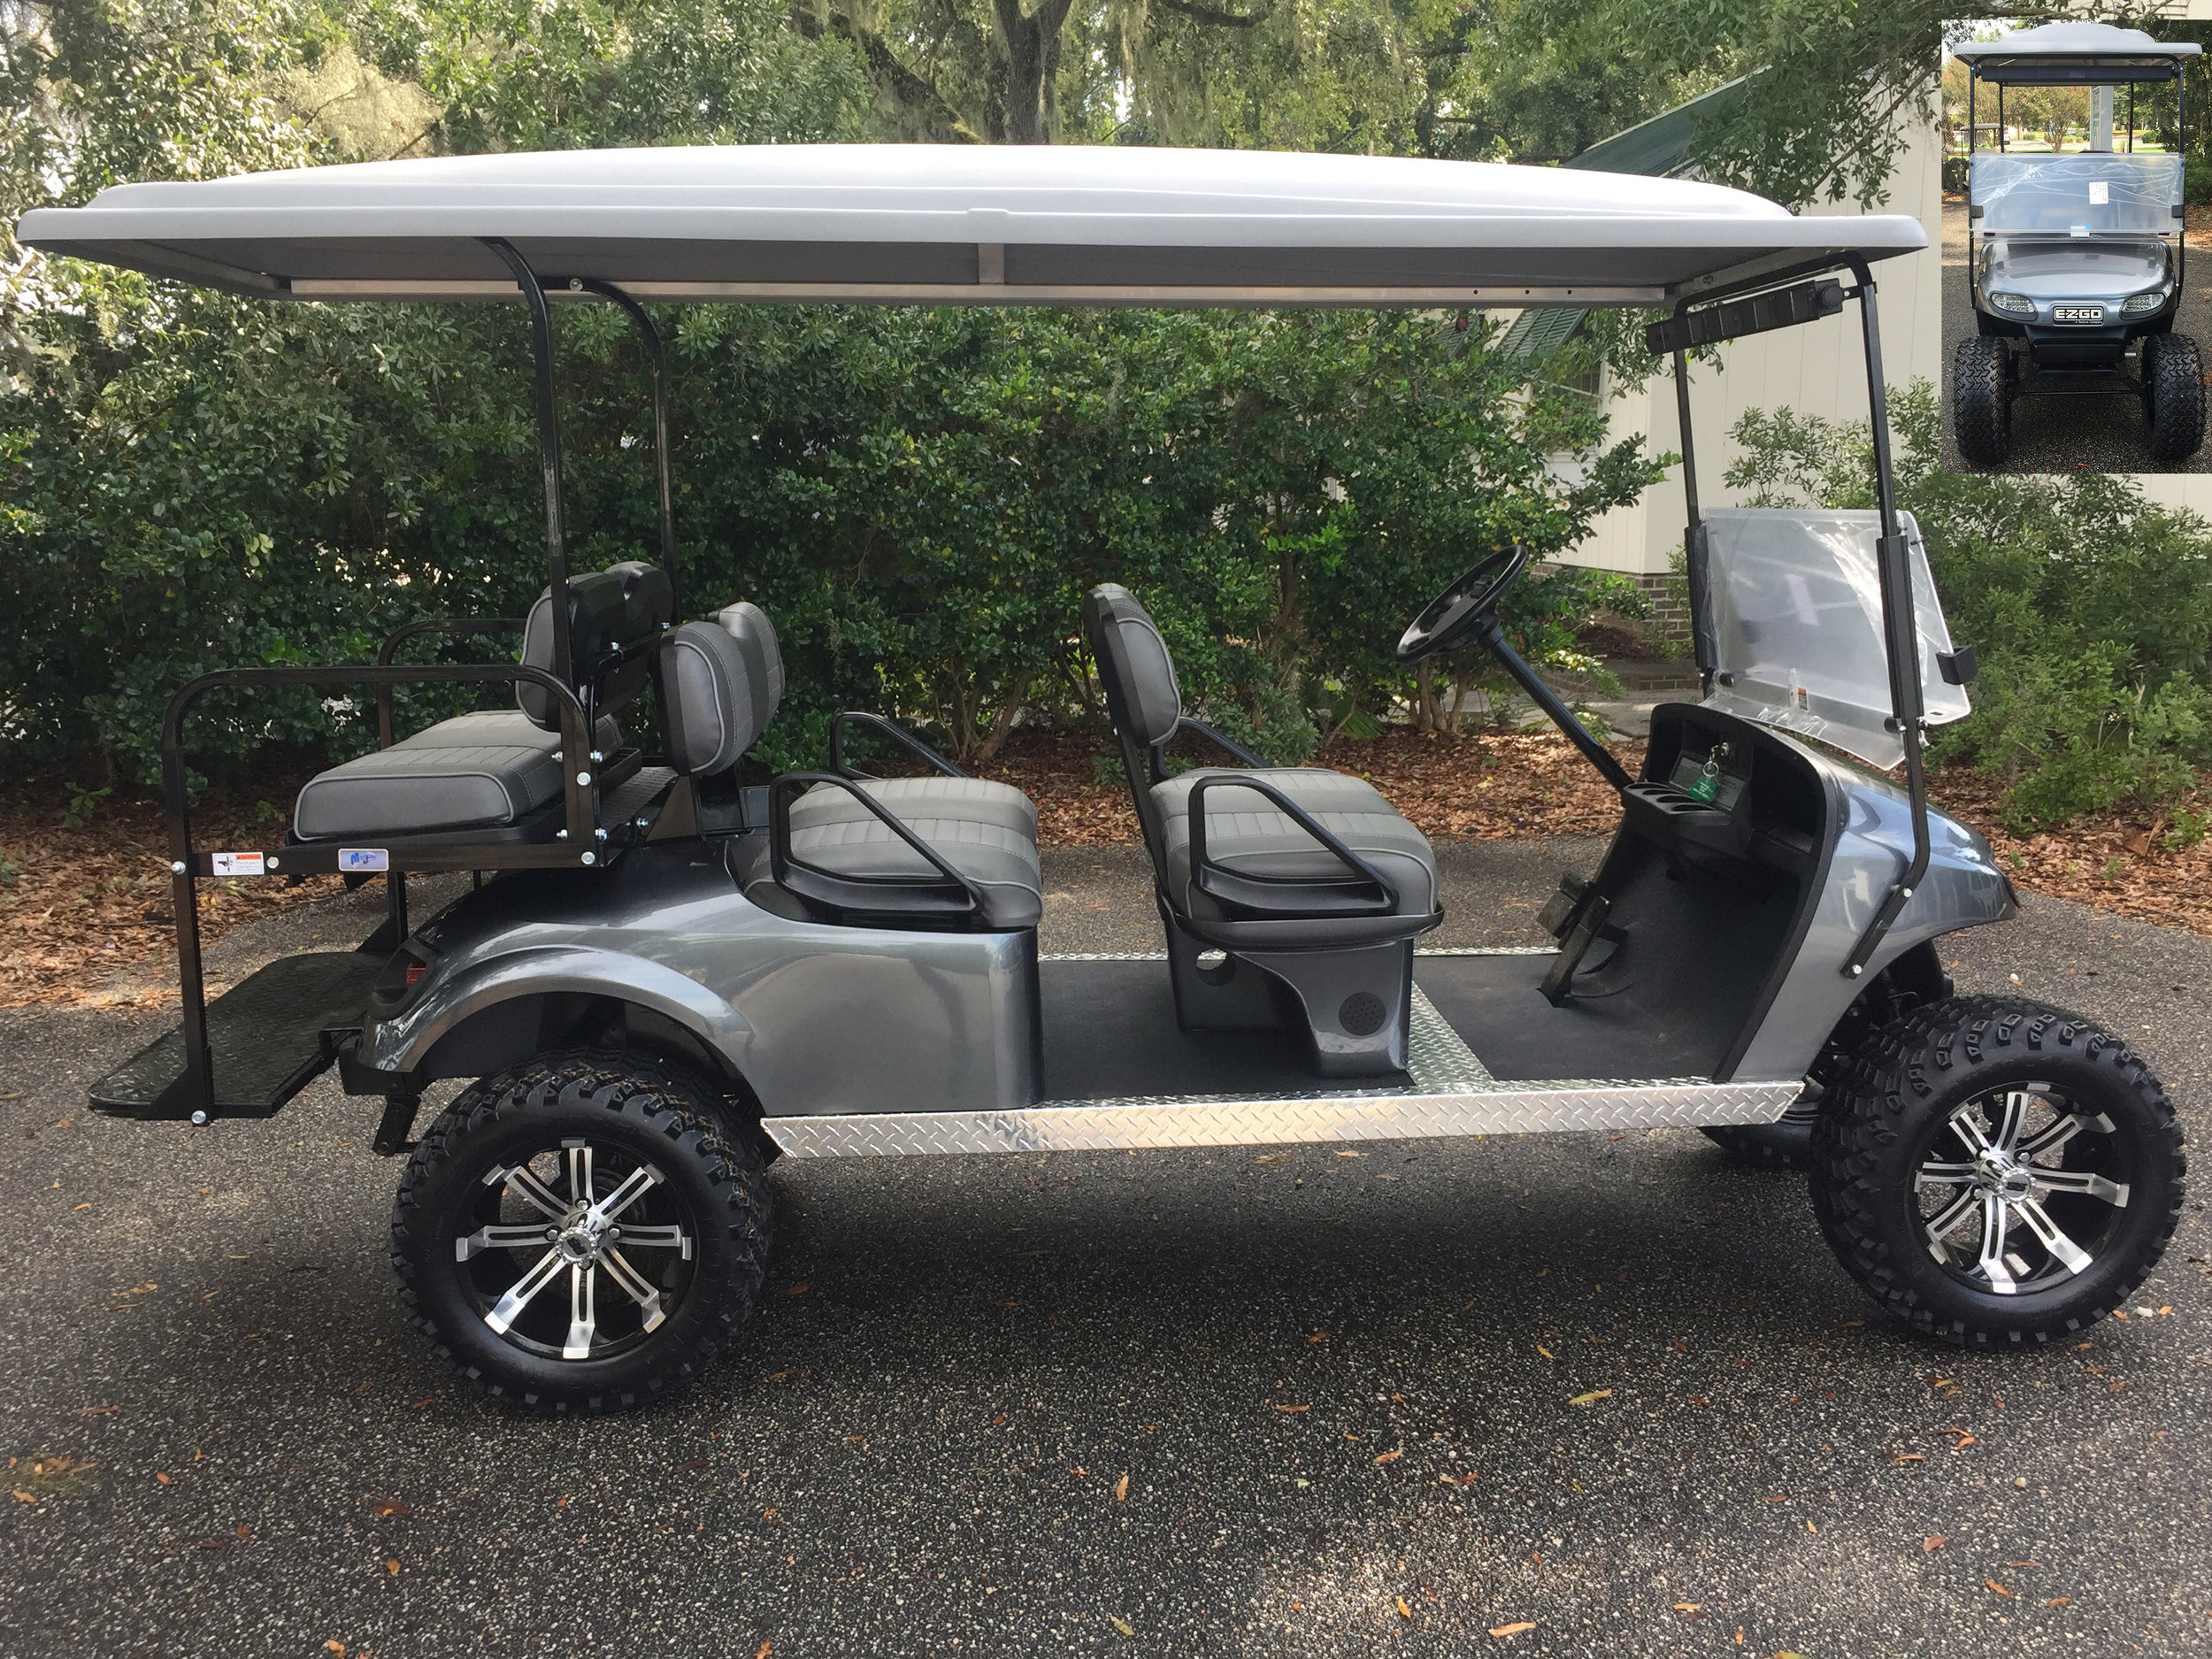 2015 Charcoal EZGO Lifted Trolley ——-  Charcoal/smoke seats, grey top, new (2019) 6-8vt batteries, high speed code, LED lights, Backlash (23x10x14) tires, state of charge meter, mirror, and flip windshield